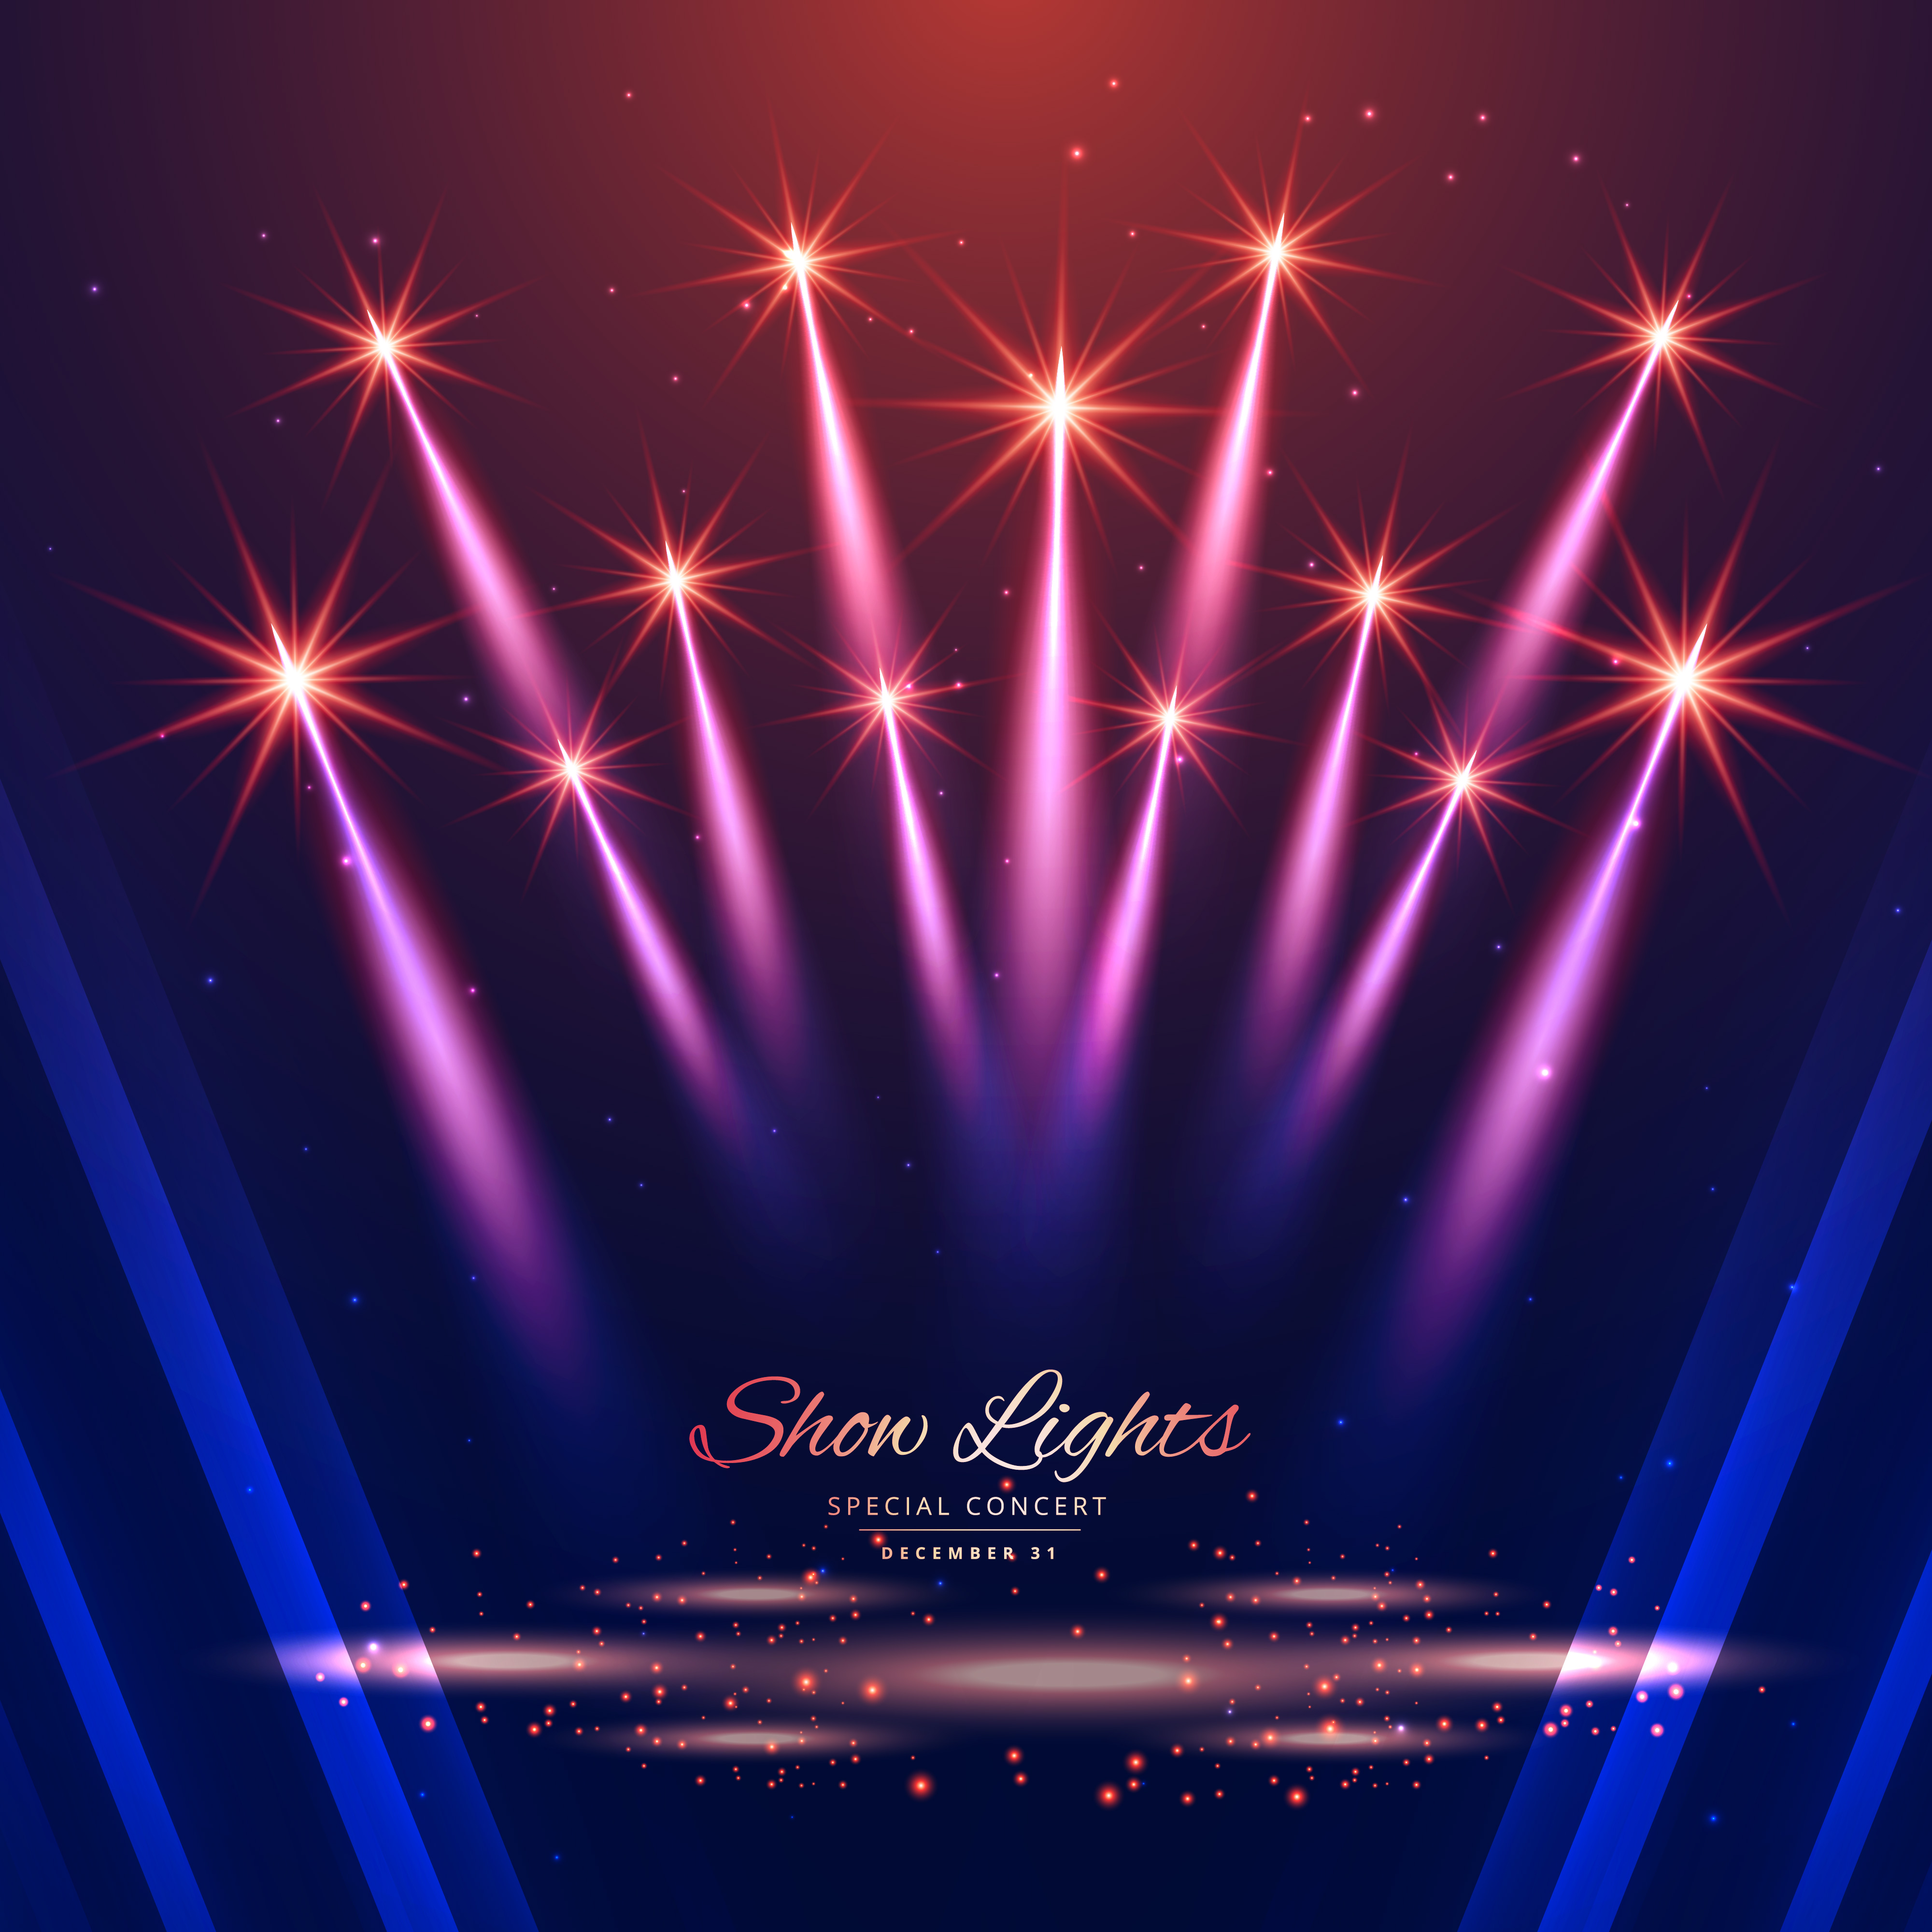 Theater Lights Background: Beautiful Show Lights Background